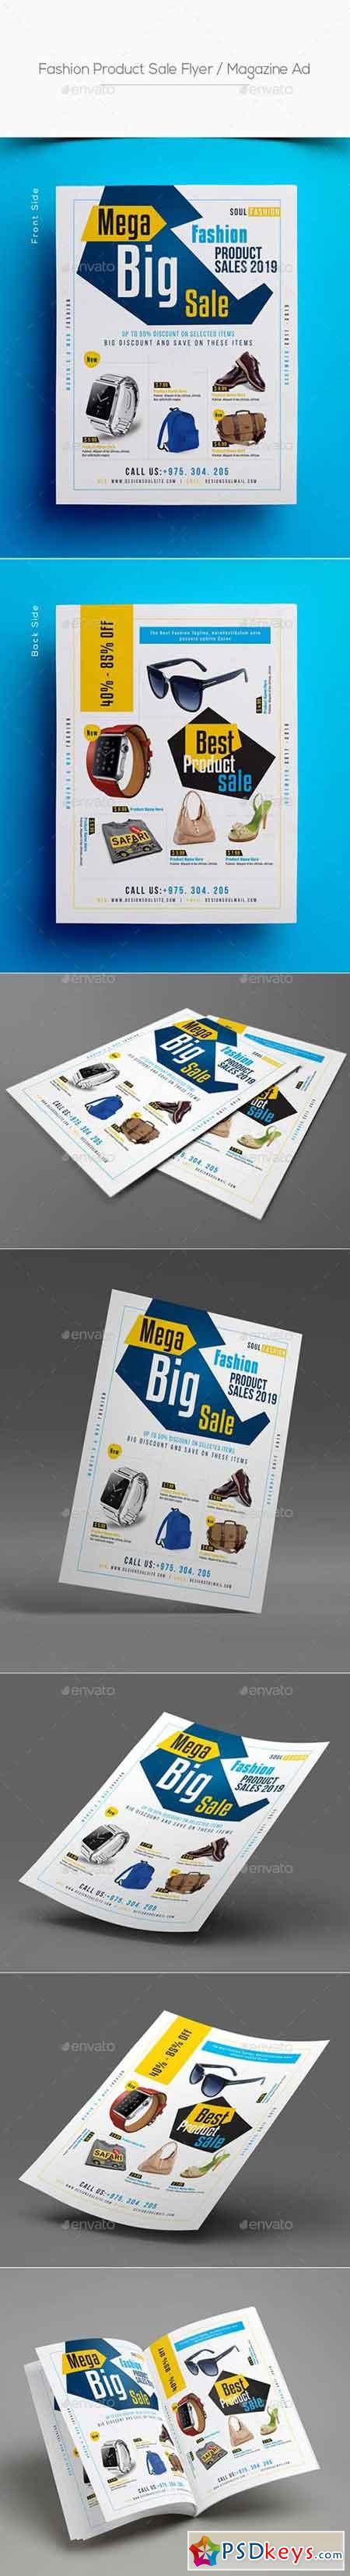 Fashion Product Sale Flyer Magazine Ad 20442847